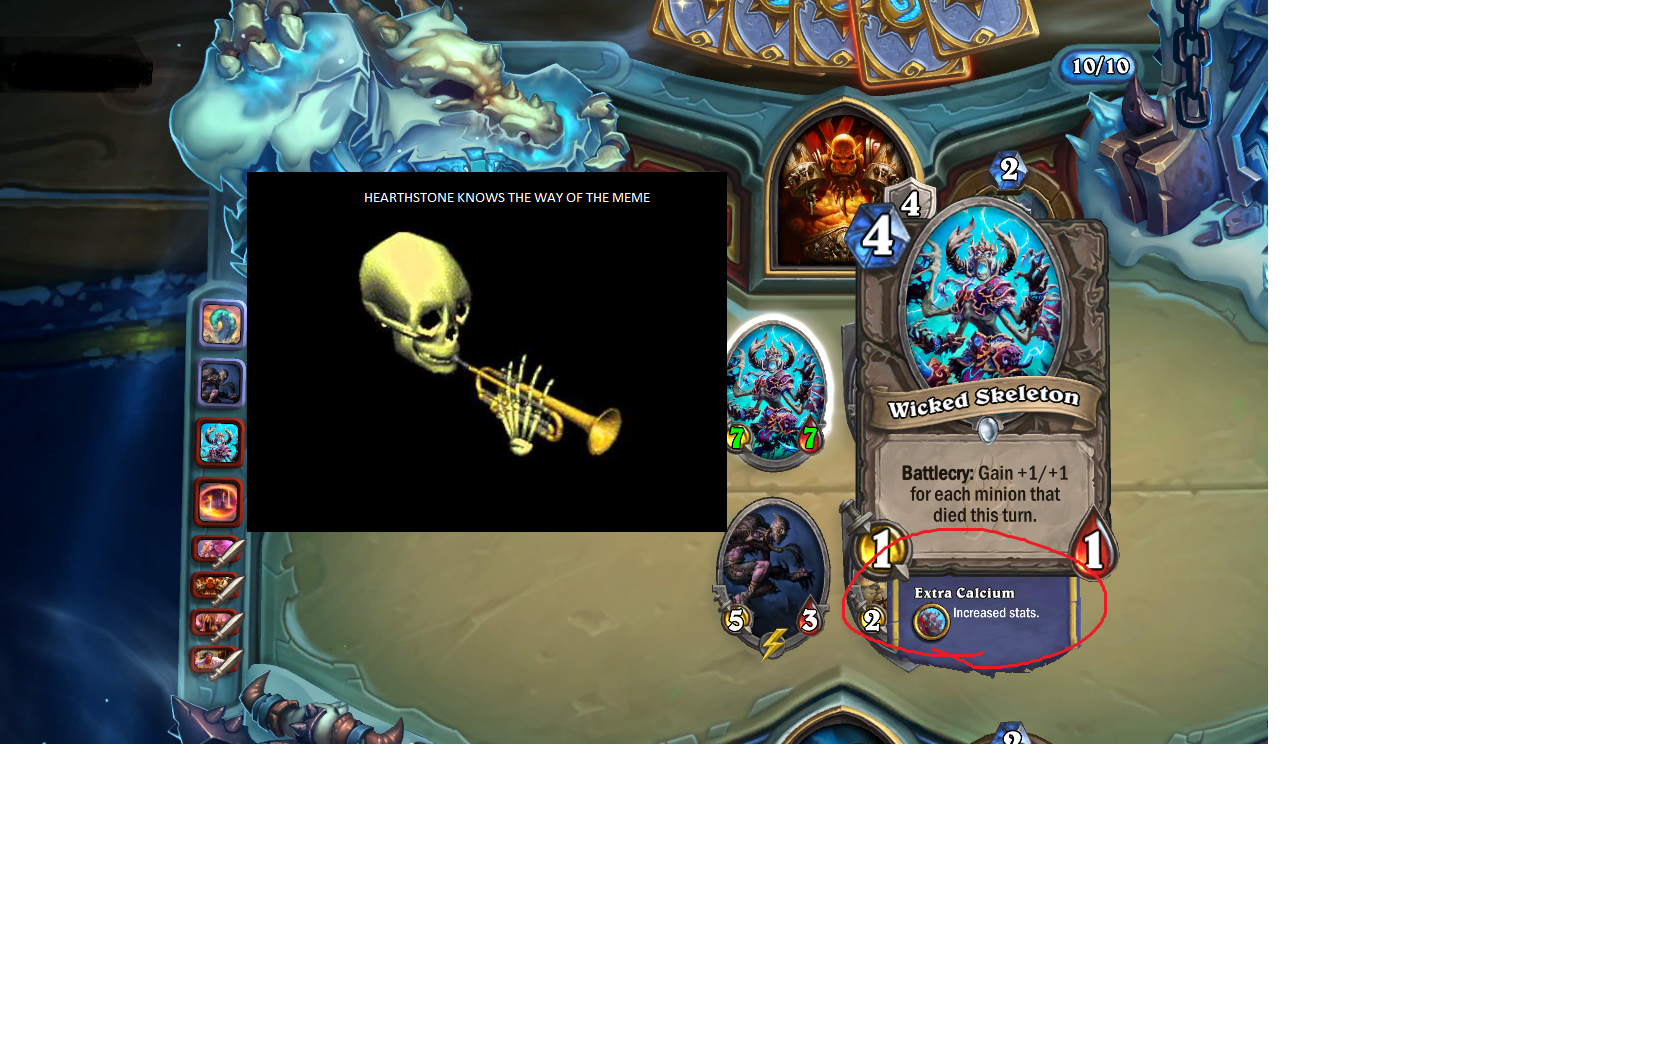 HEARTHSTONE DOOTS TO BEAT